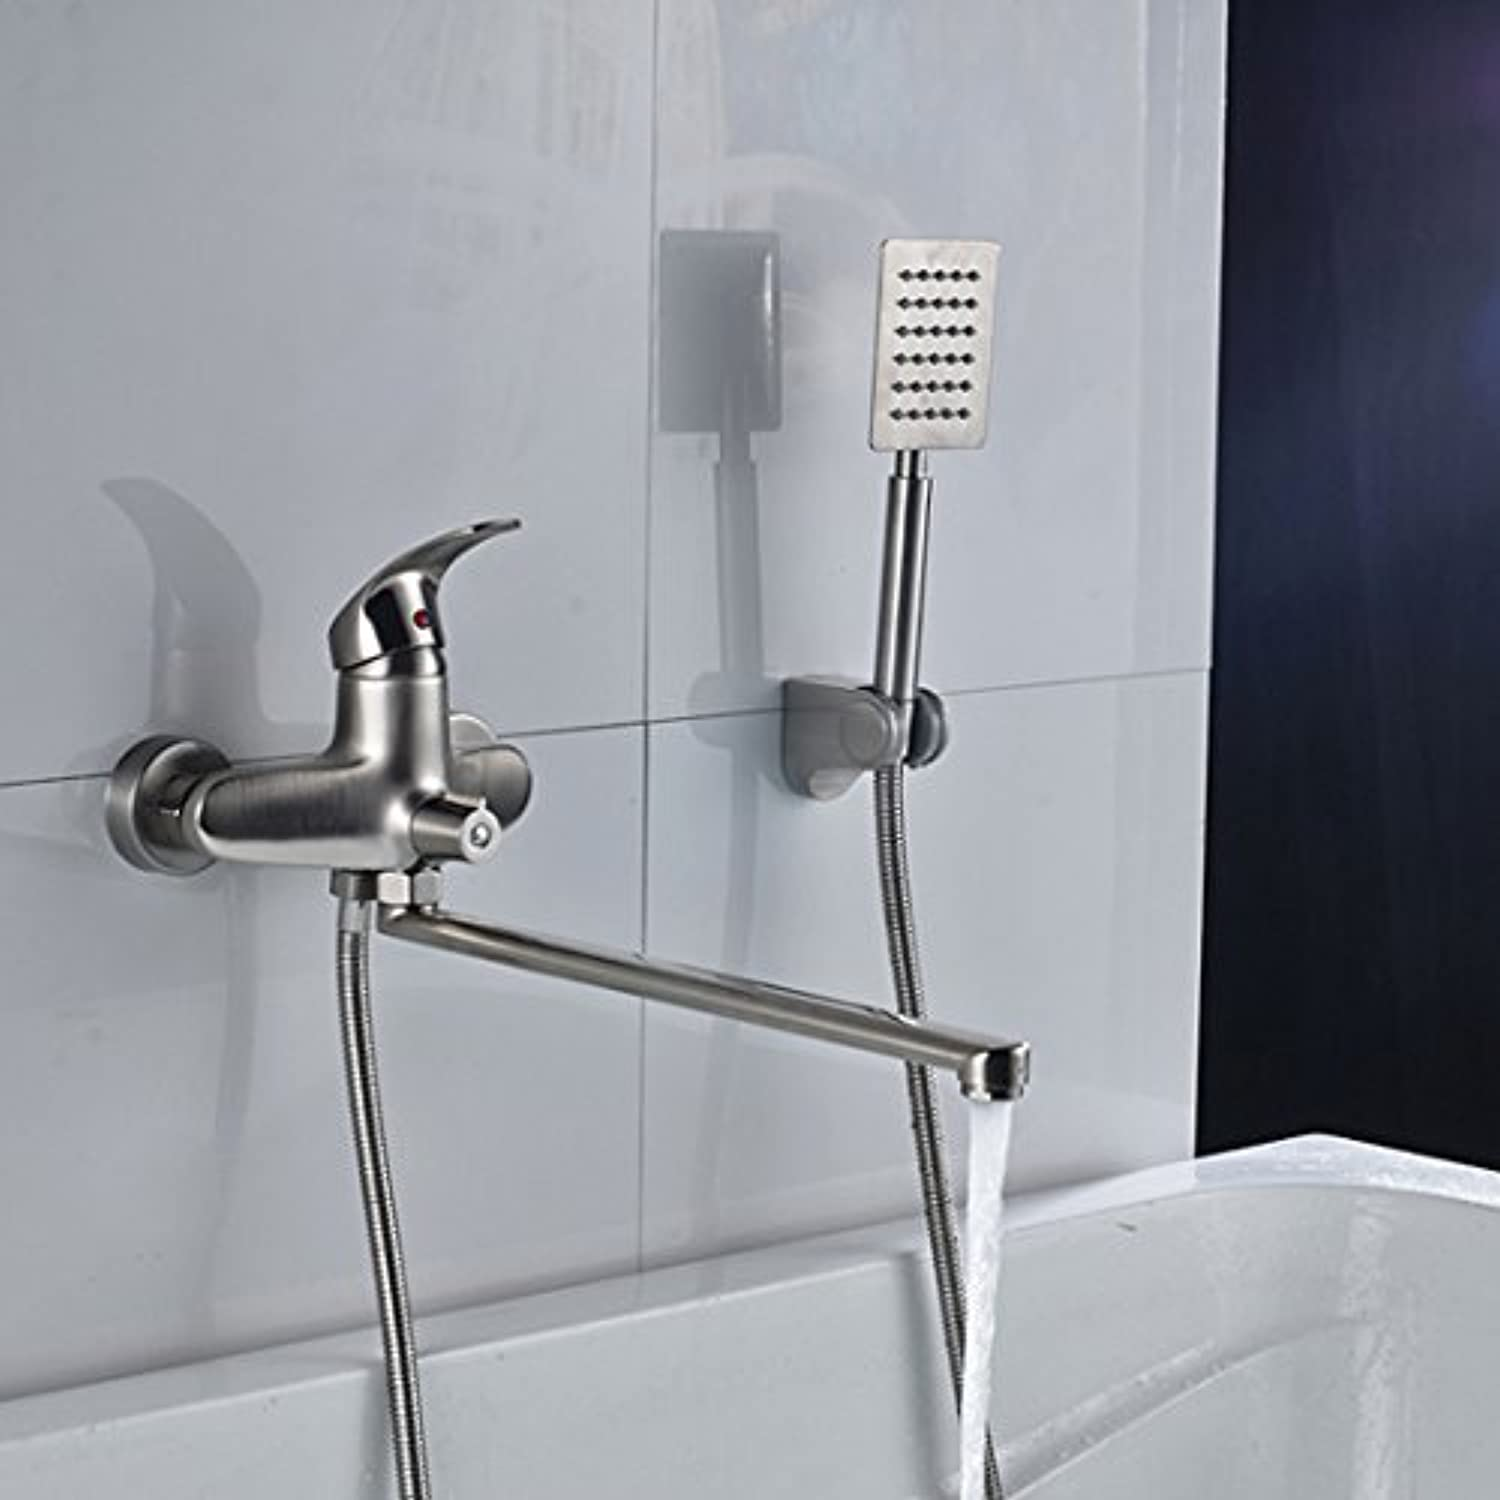 Better Quality Long spout Outlet Faucet Glass to The Wall Assembled at Longnose Glass with Hand Shower & Bearer, B